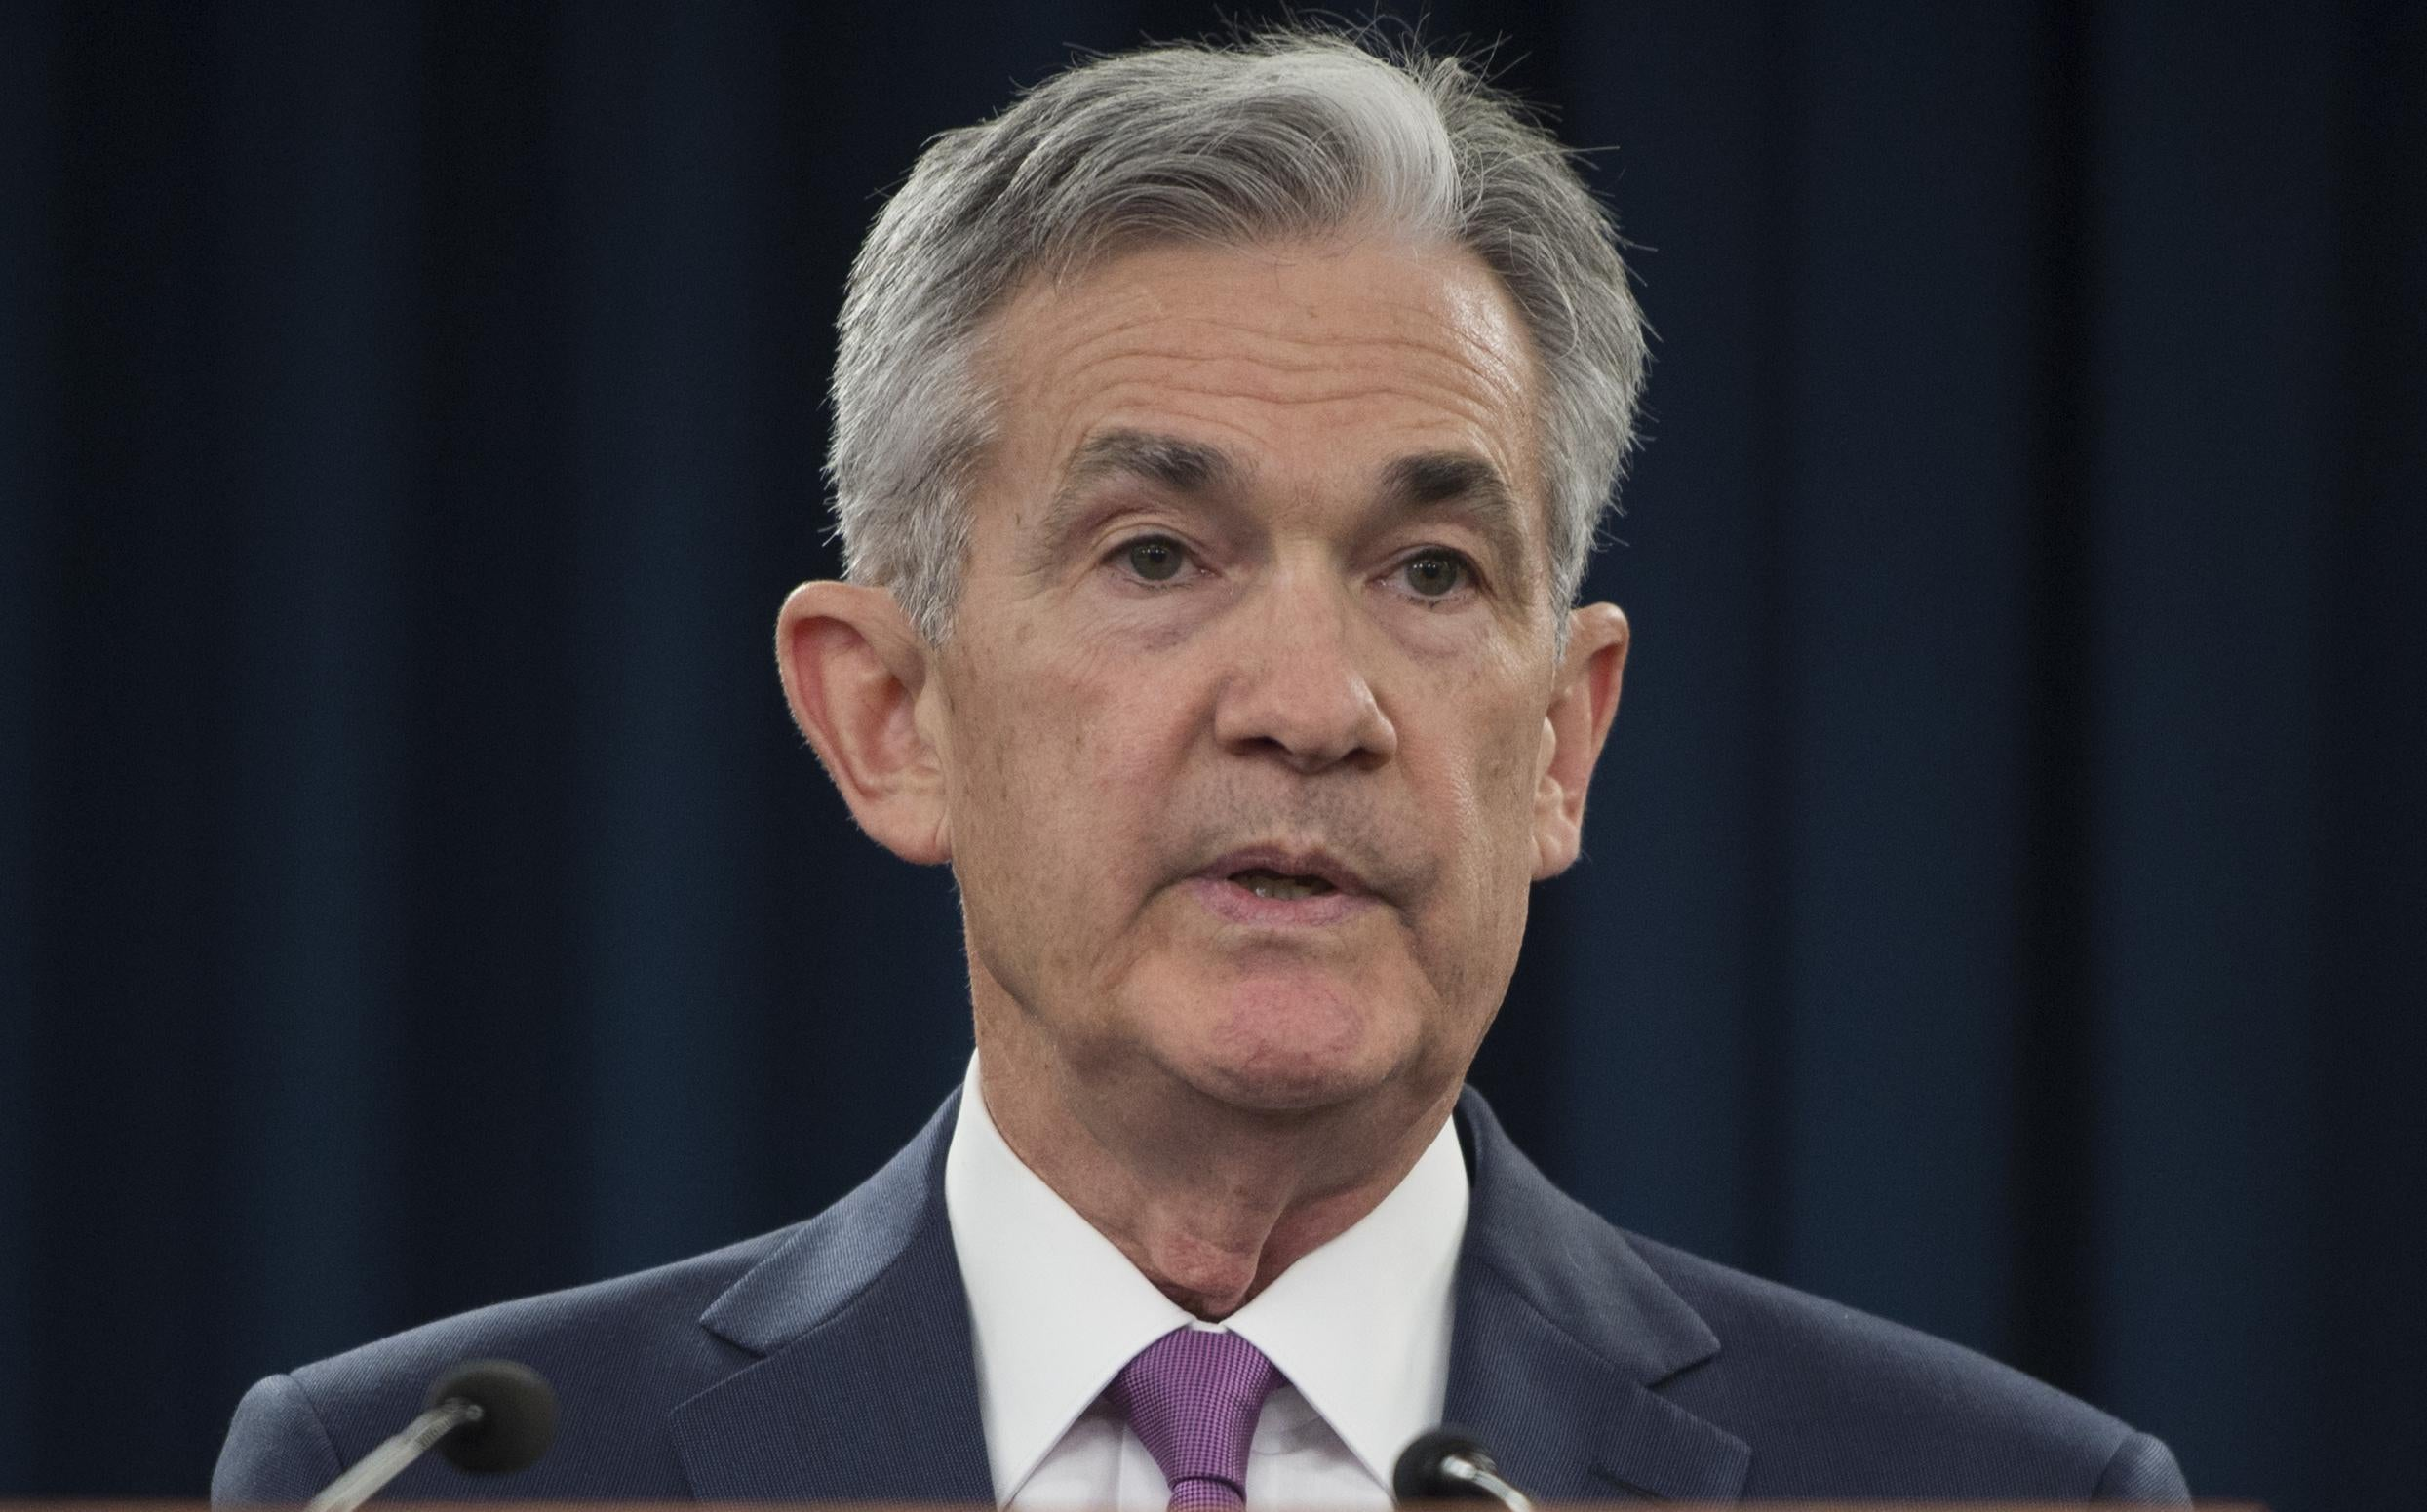 Federal Reserve Board Chairman Jerome Powell speaks during a news conference  in Washington DC on June 13, 2018. - The US Federal Reserve raised the benchmark lending rate on Wednesday, the second increase of the year, and signaled two more hikes were coming in 2018 and four in 2019, a possible sign of concern about accelerating inflation. (Photo by Andrew CABALLERO-REYNOLDS / AFP)        (Photo credit should read ANDREW CABALLERO-REYNOLDS/AFP/Getty Images)